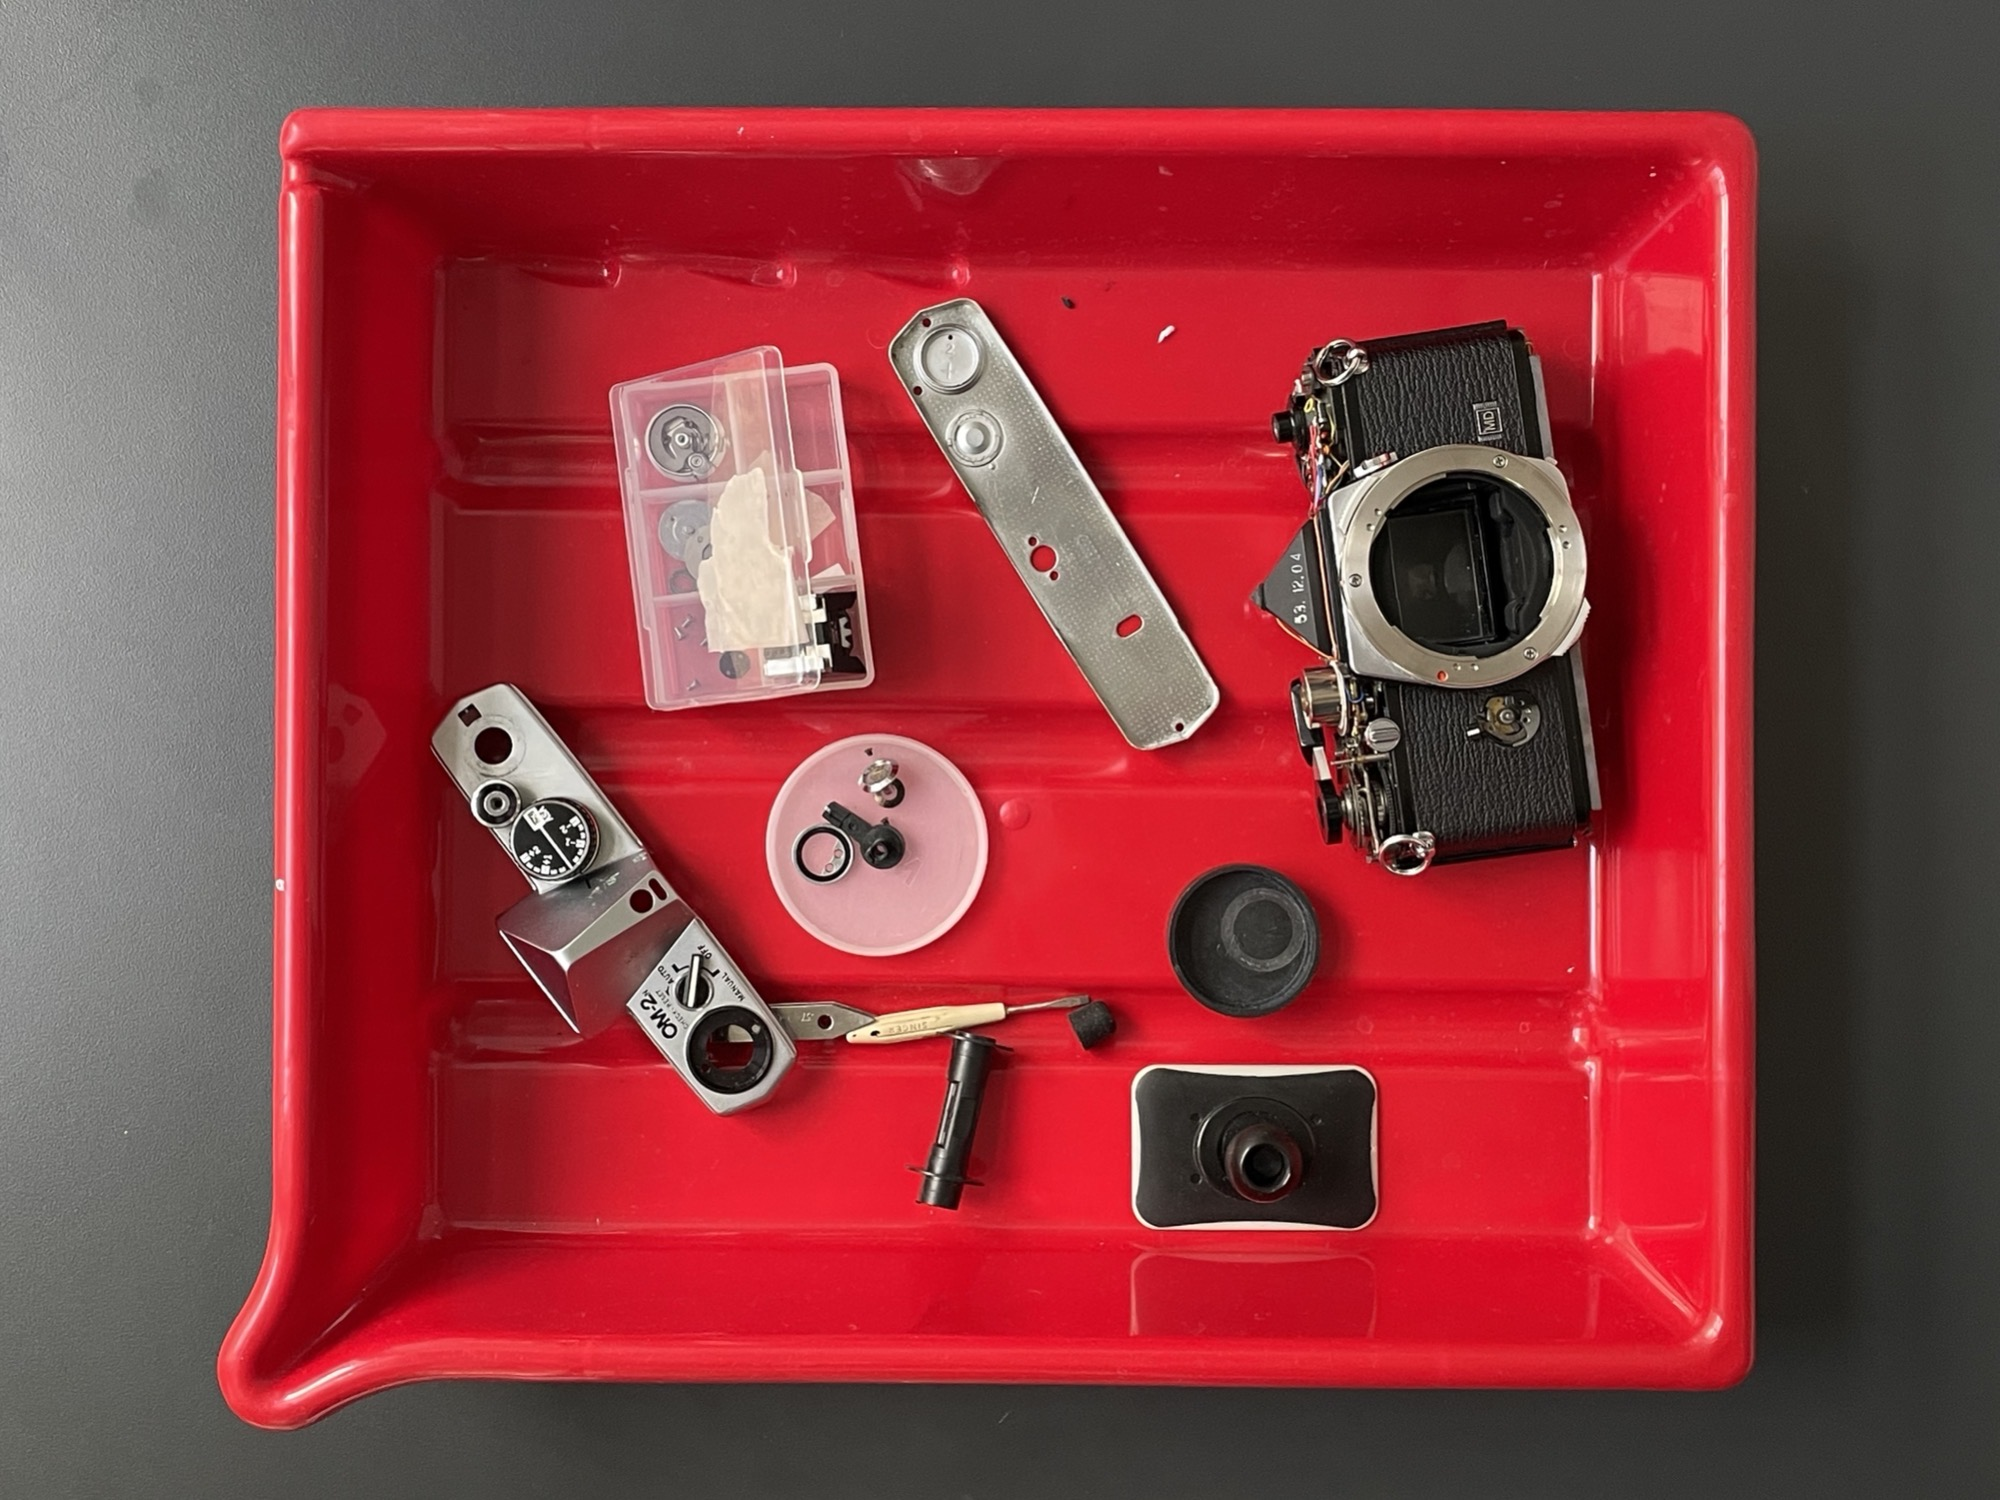 Olympus OM-2n, disassembled and parts in a red bucket.